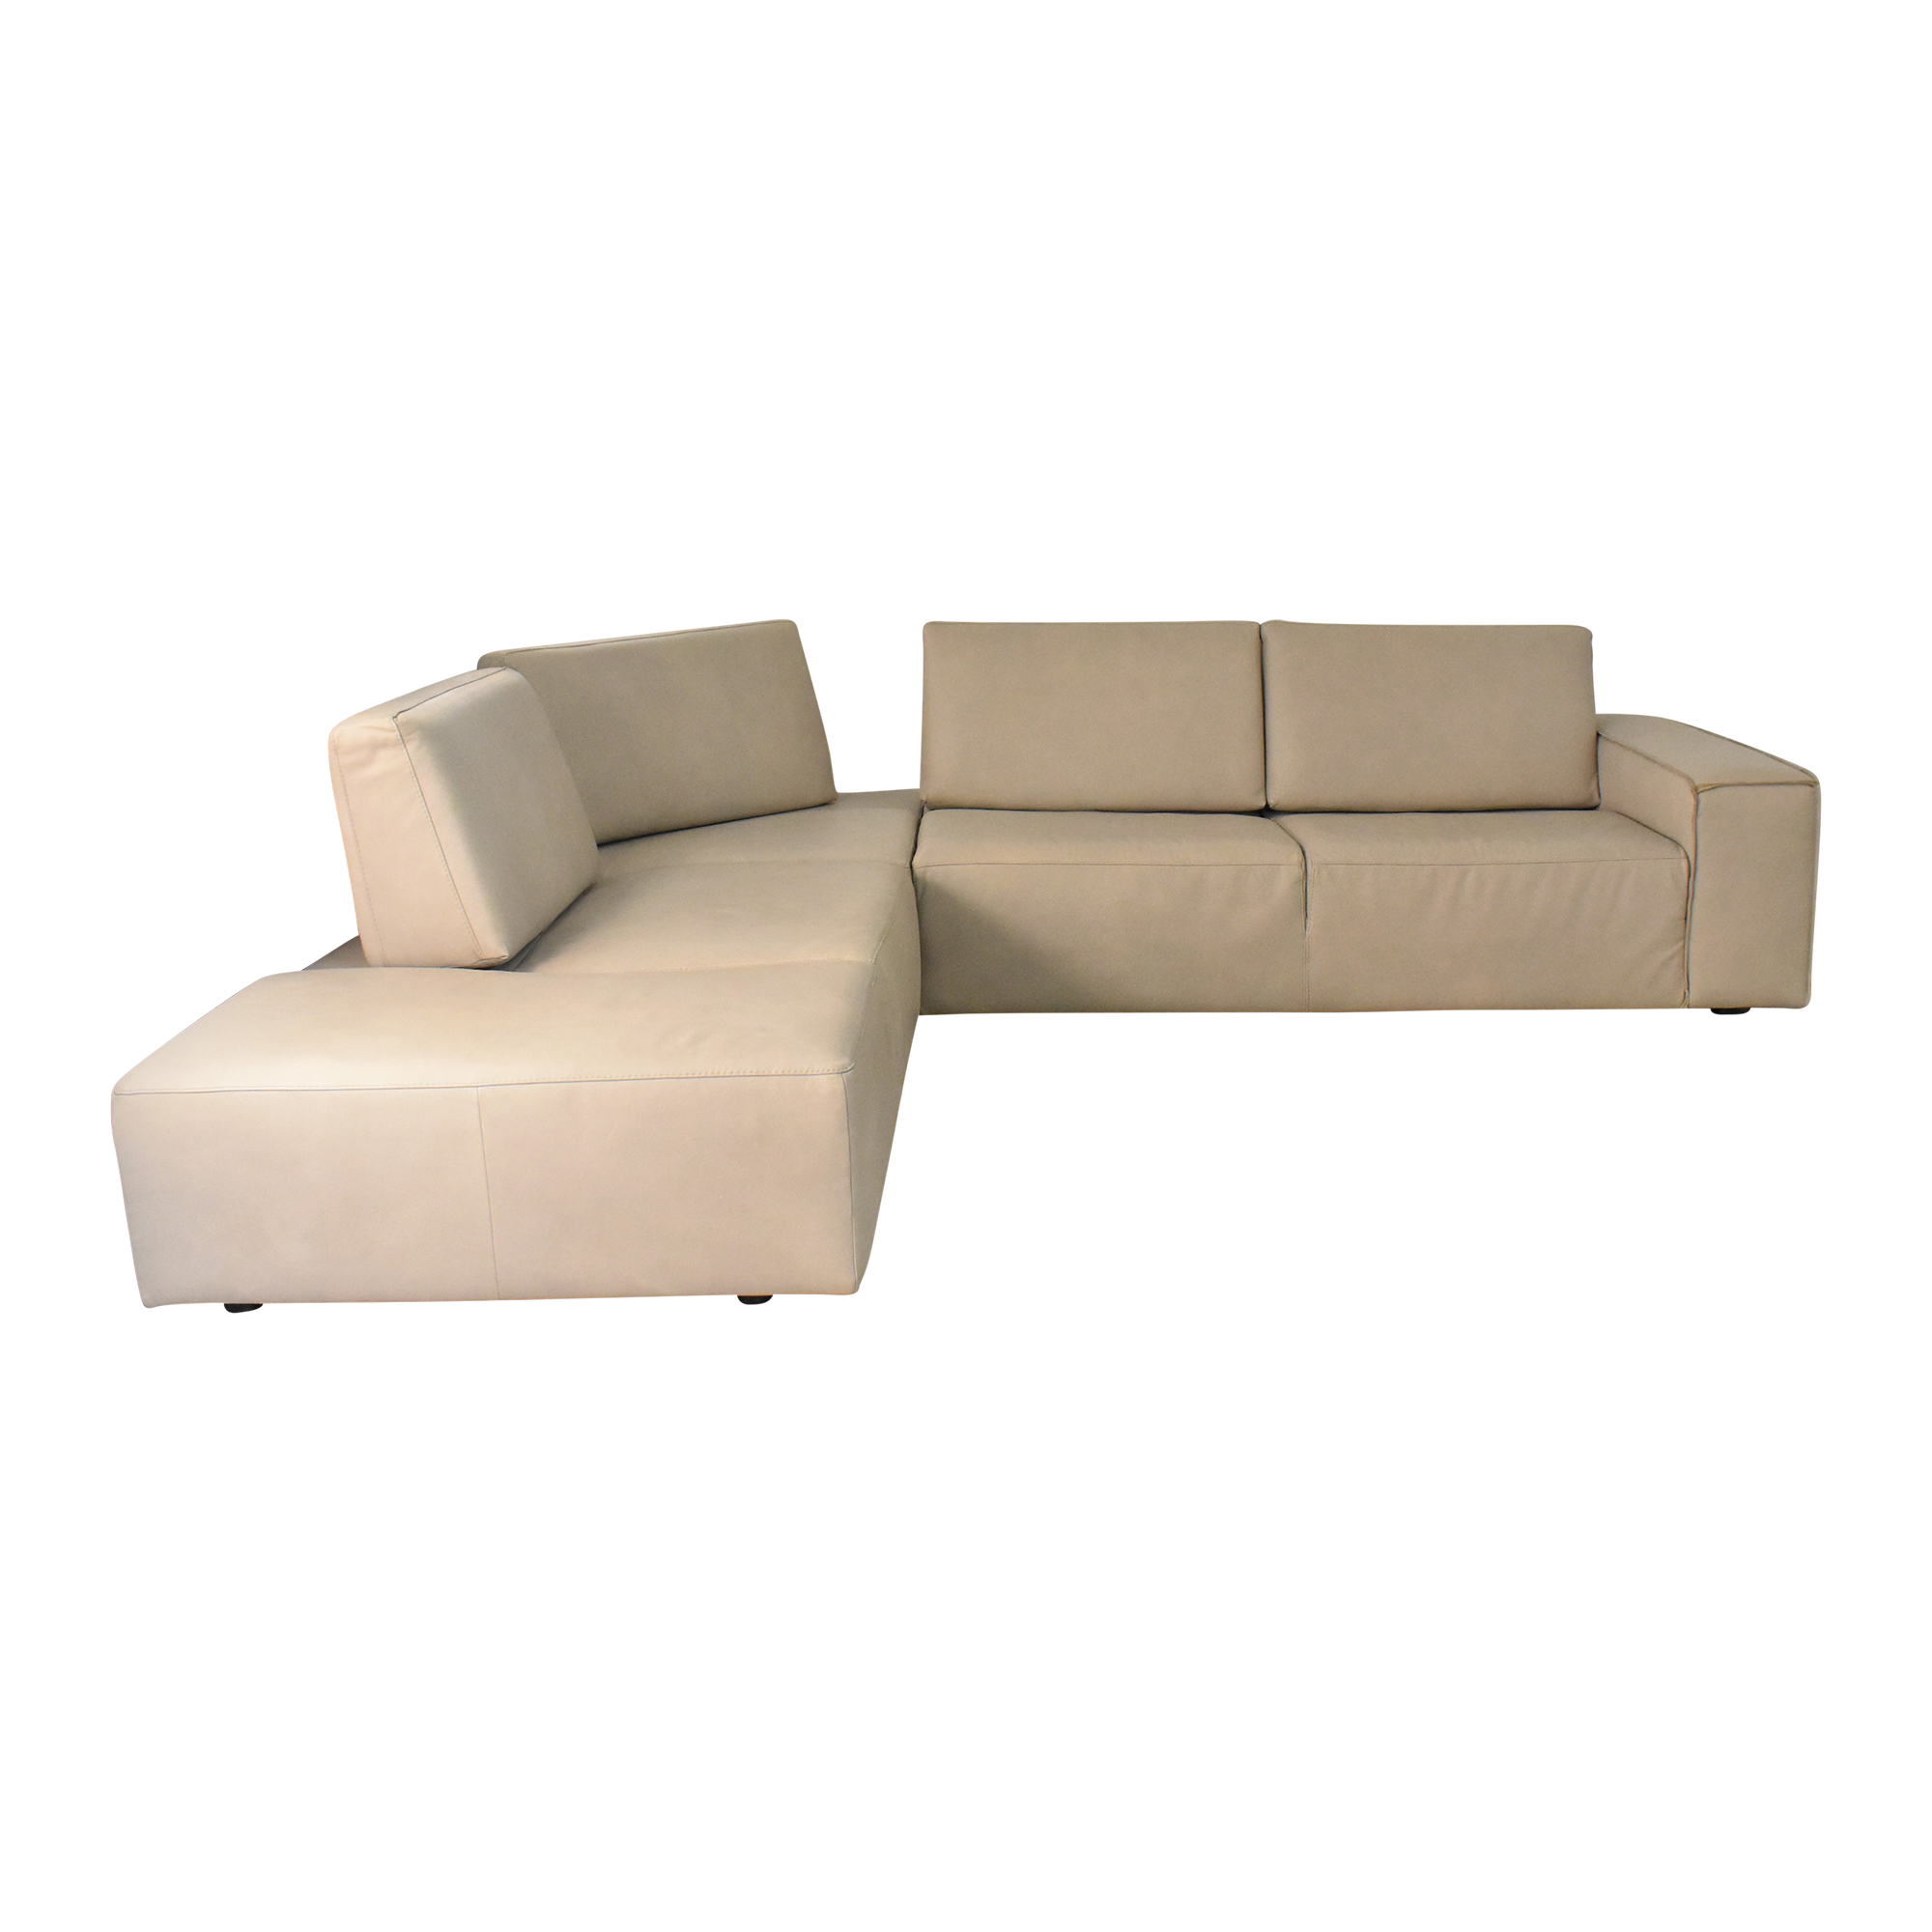 Accenti Italia Enjoy Sectional Sofa / Sofas